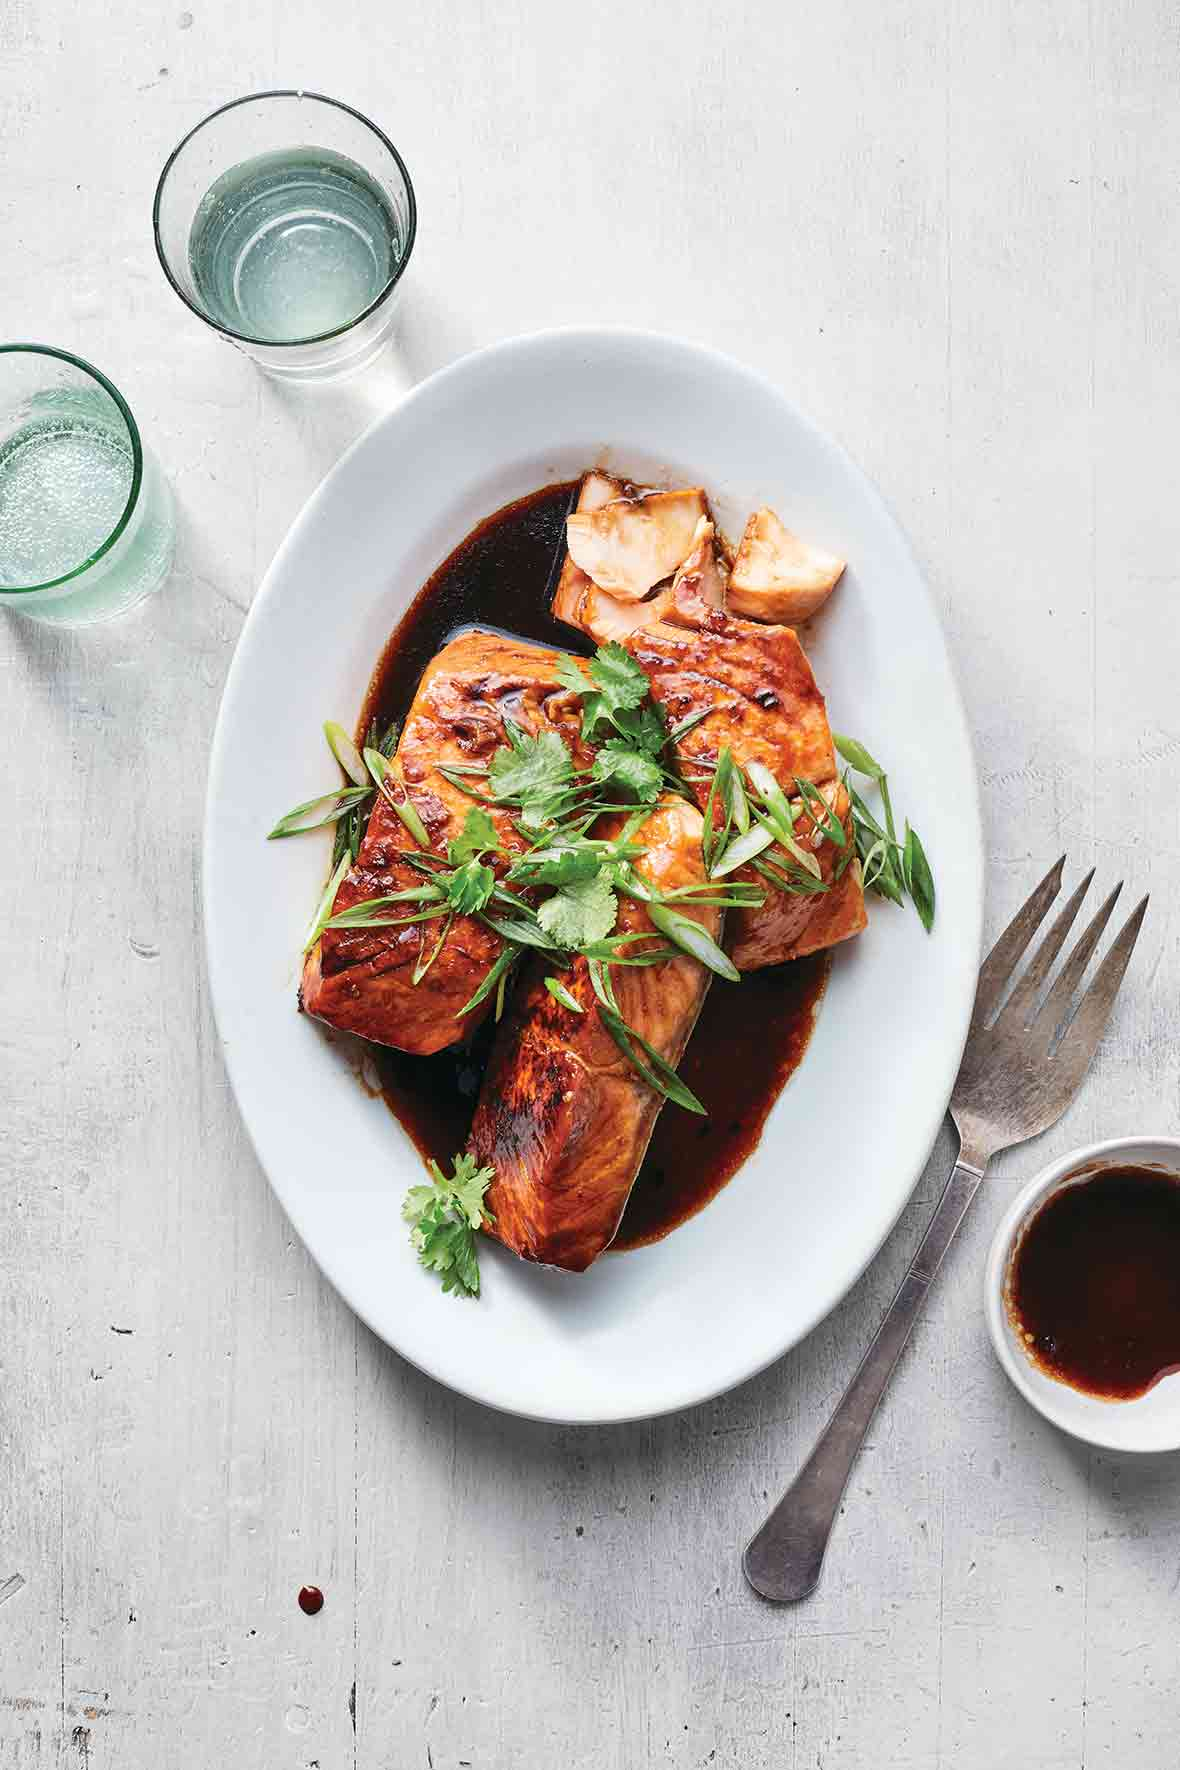 Pressure cooker vietnamese caramel salmon, sliced green onion, and soy sauce on a white plate